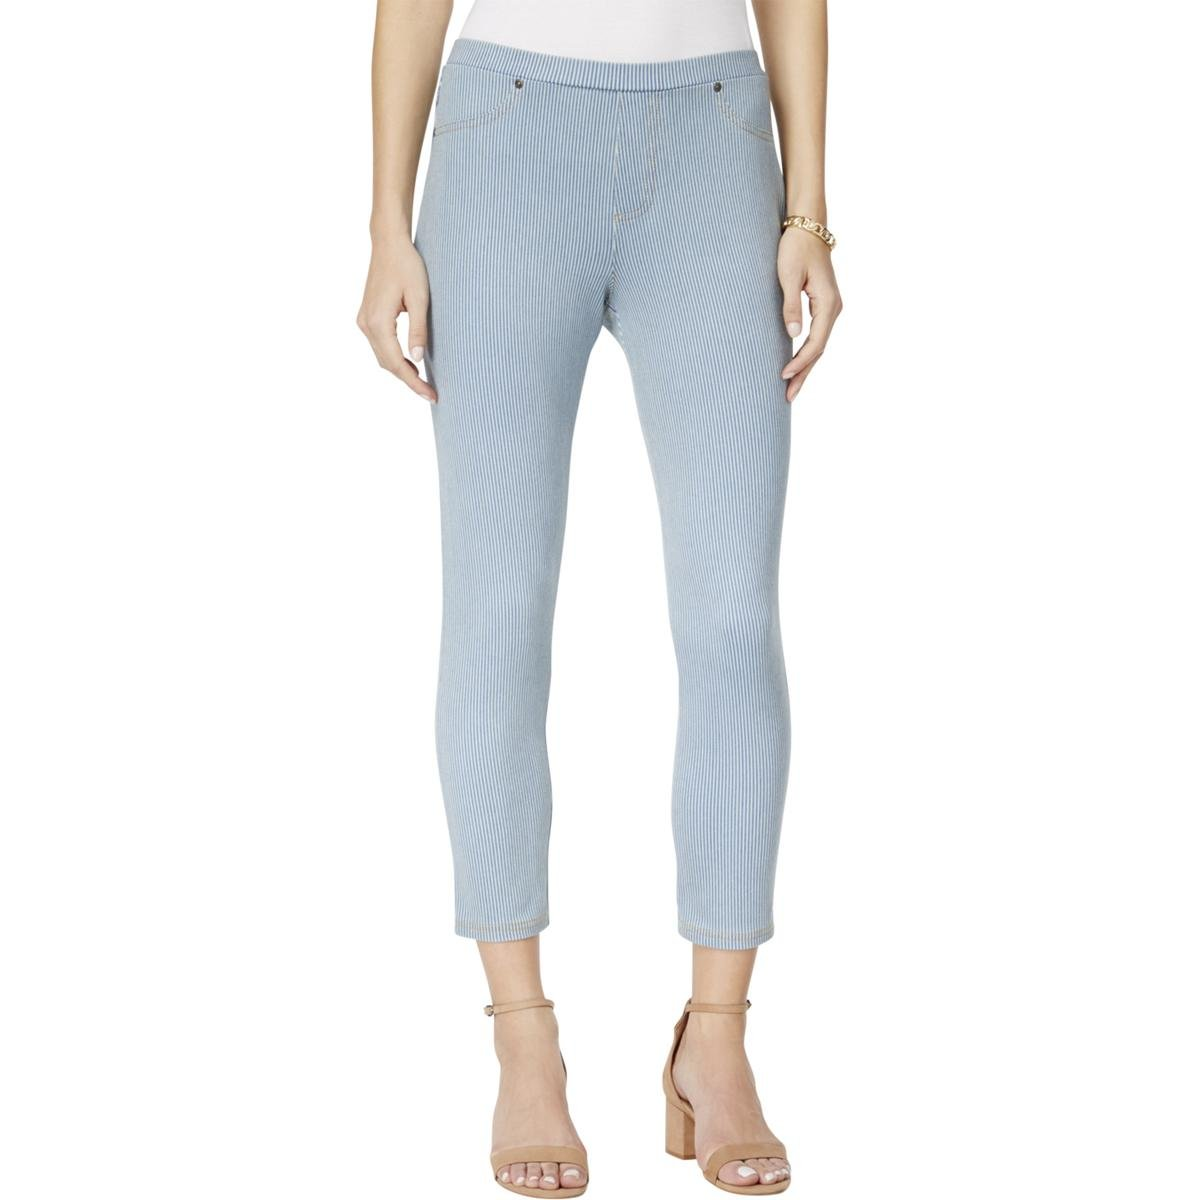 Style & Co. Womens Striped Casual Capri Leggings Blue M